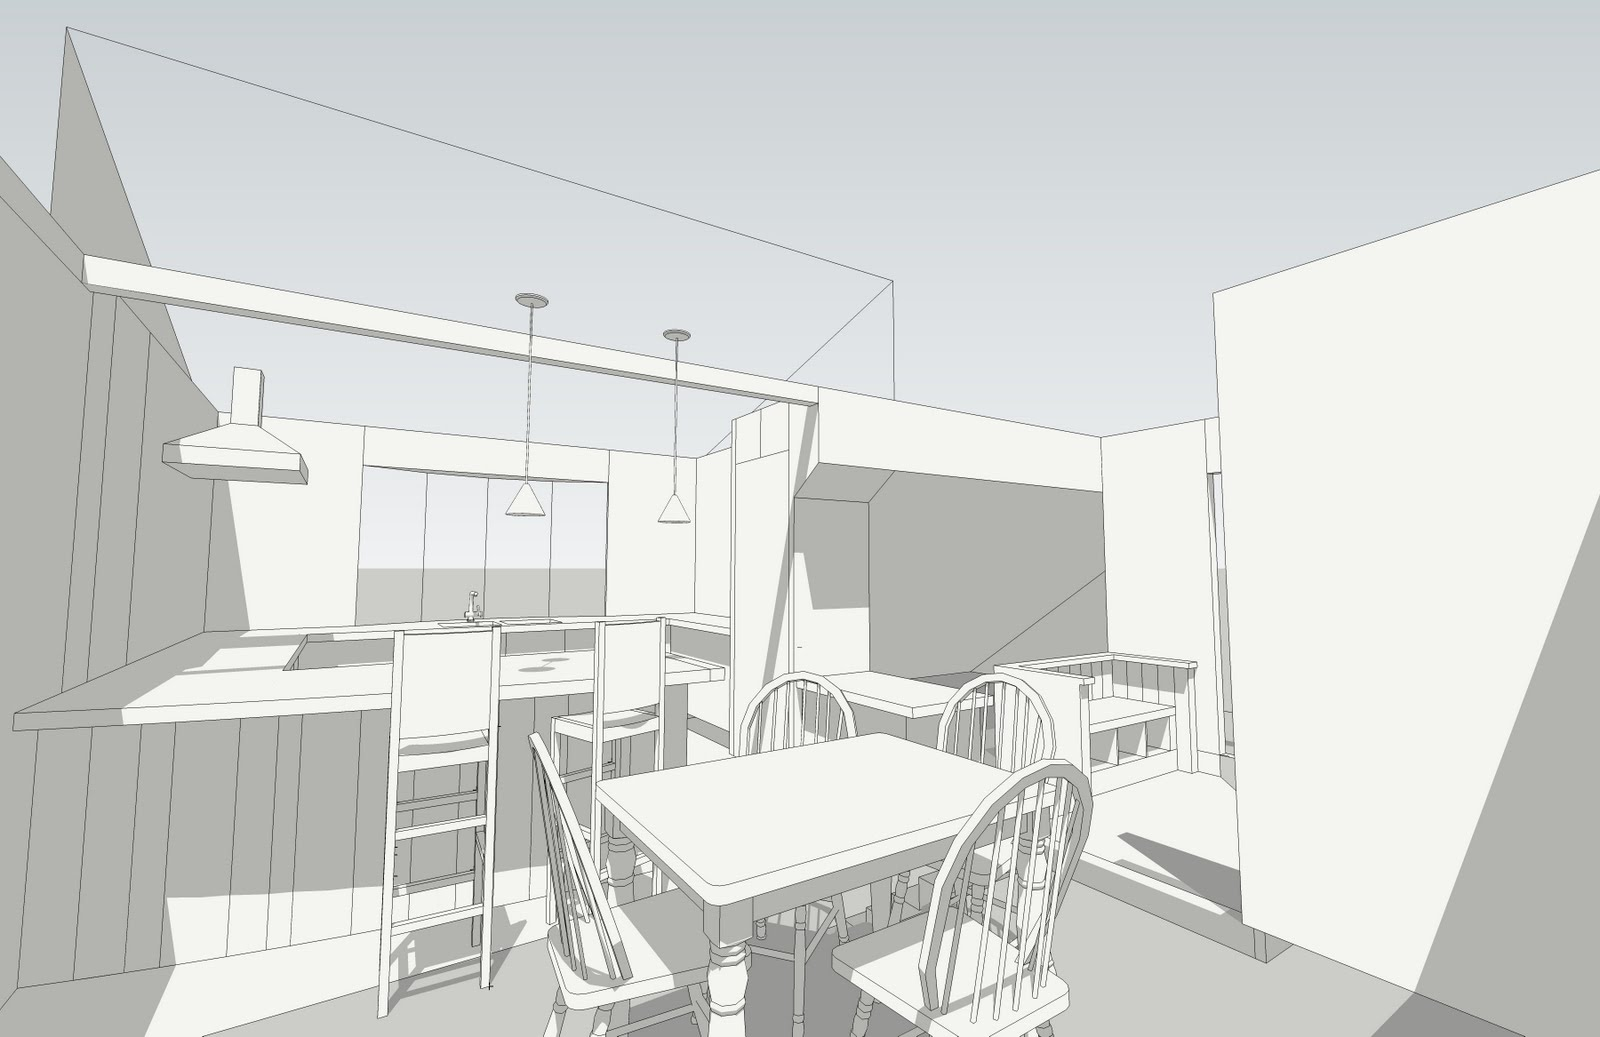 The First Sketches Are Taken From A Model Of The Kitchen Interior Followed By A Quick Hand Sketch Plan Of The Renovated Design For Before And After Shots